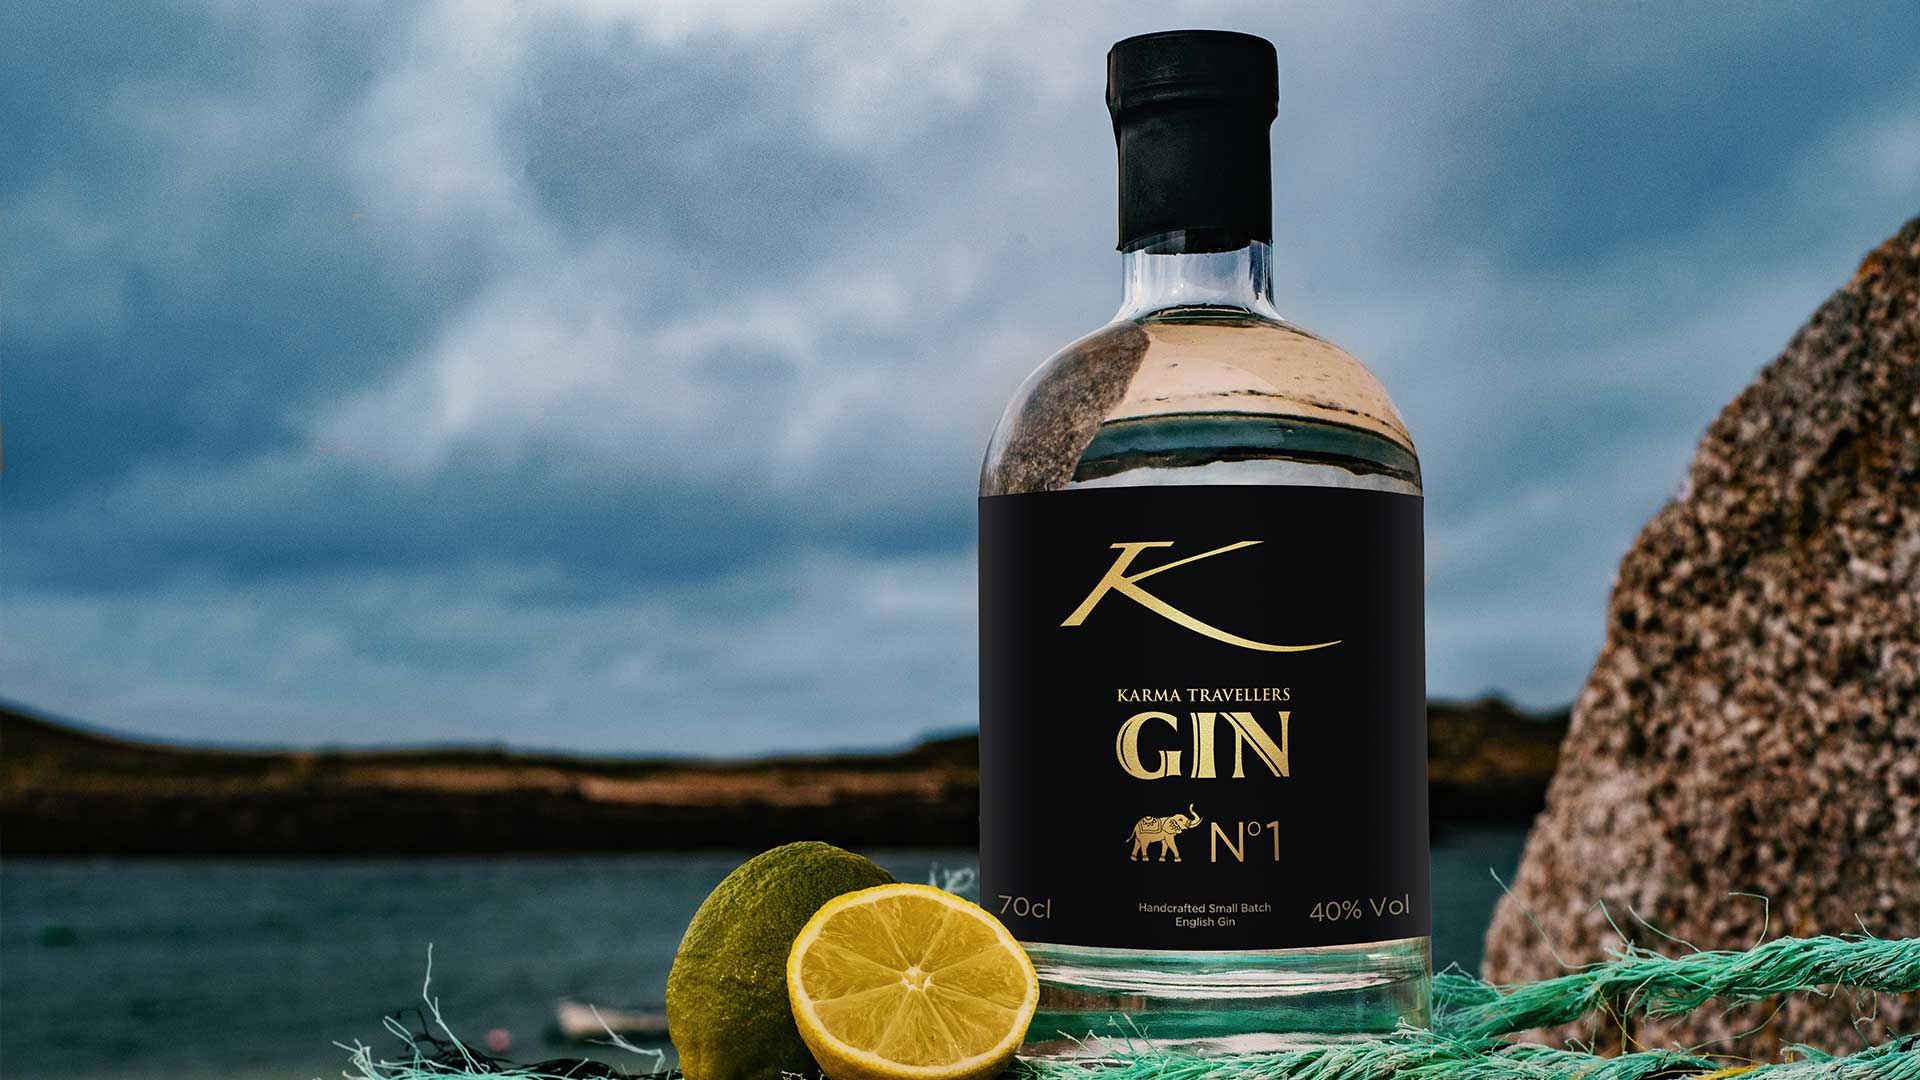 A Toast to the Karma Group Travellers Gin Award